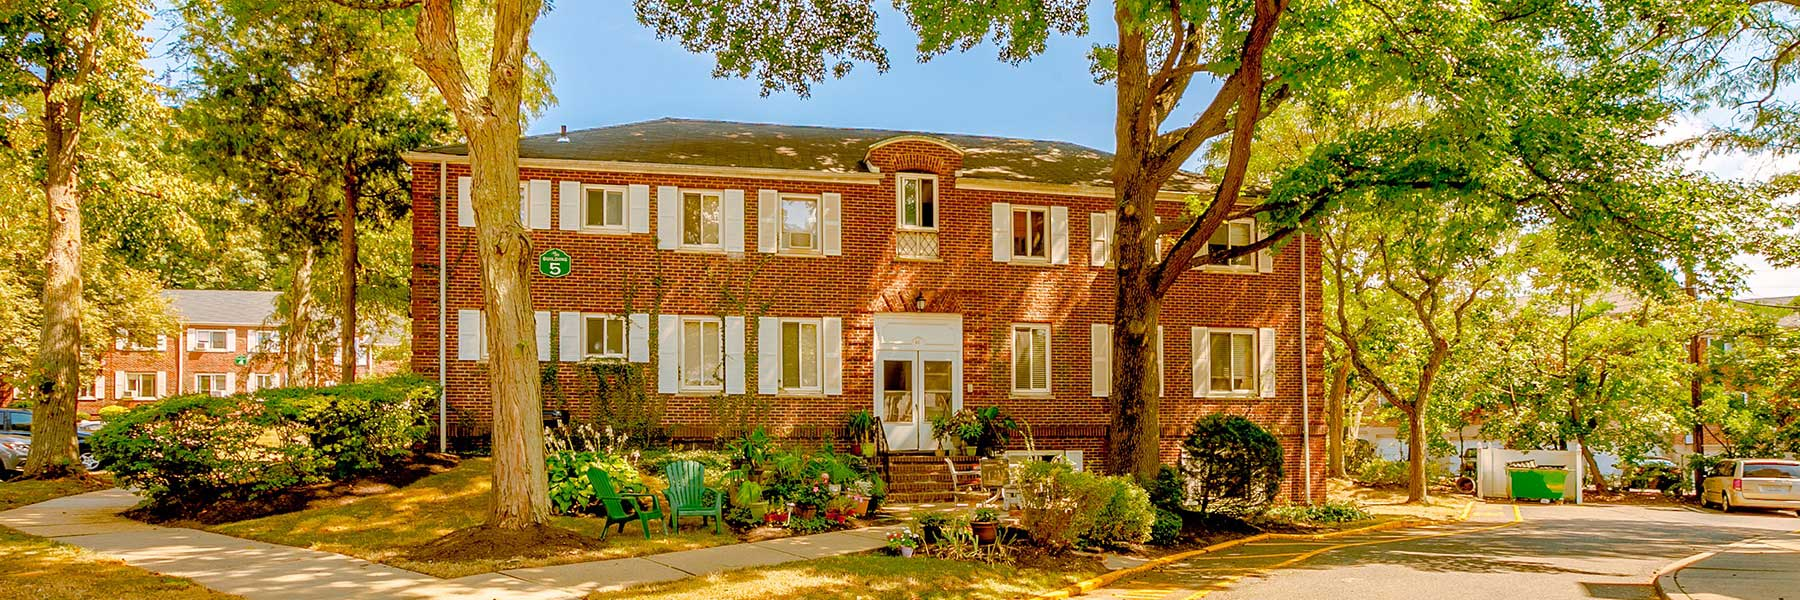 Red Bank Terrace Apartments